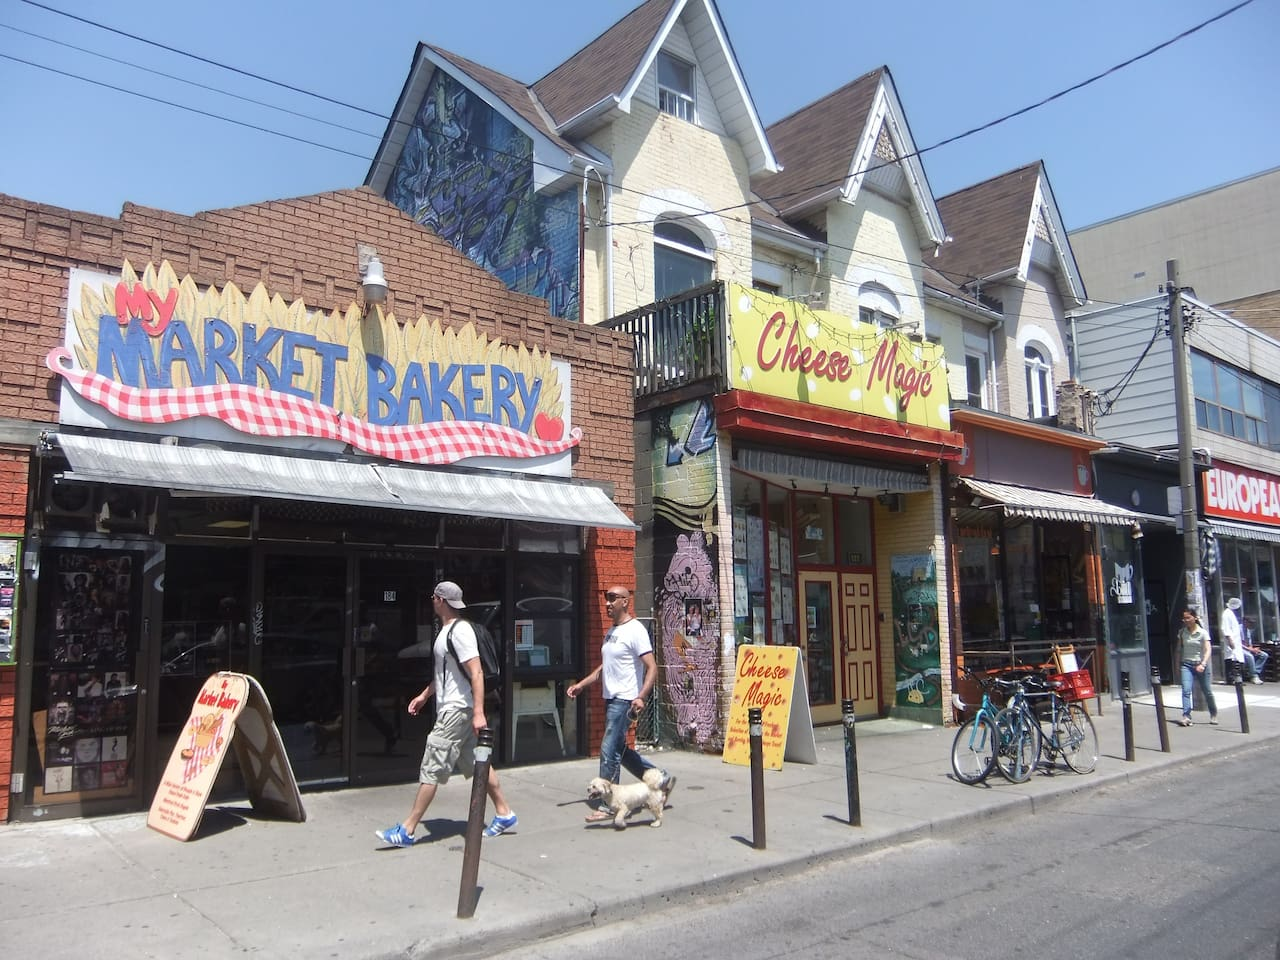 Welcome to Kensington Market!